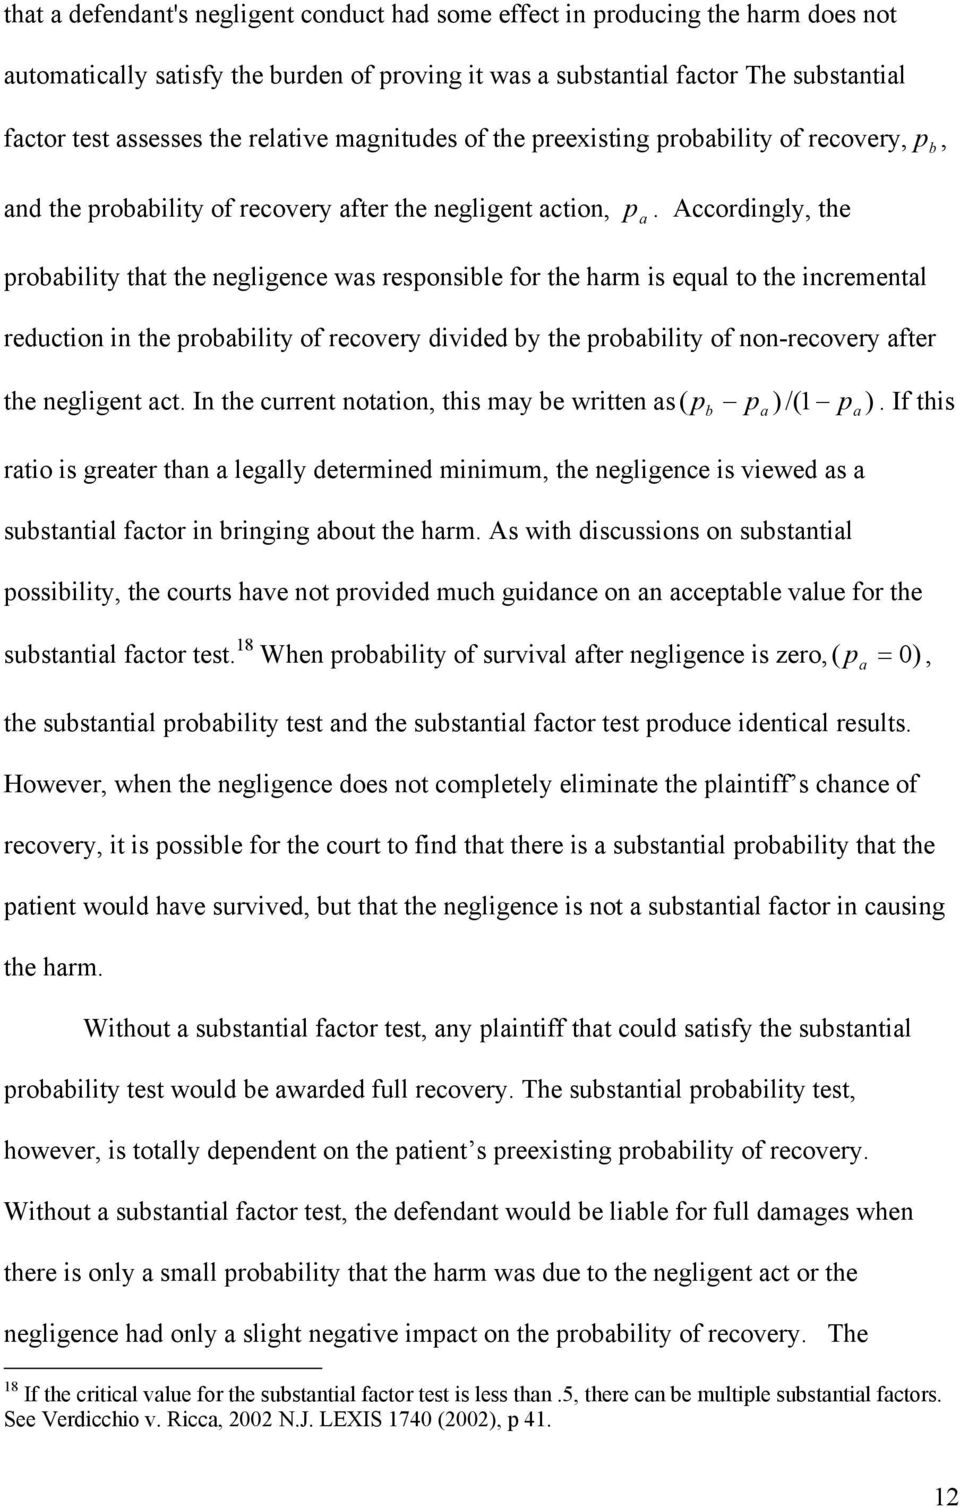 Accordingly, the probability that the negligence was responsible for the harm is equal to the incremental reduction in the probability of recovery divided by the probability of non-recovery after the